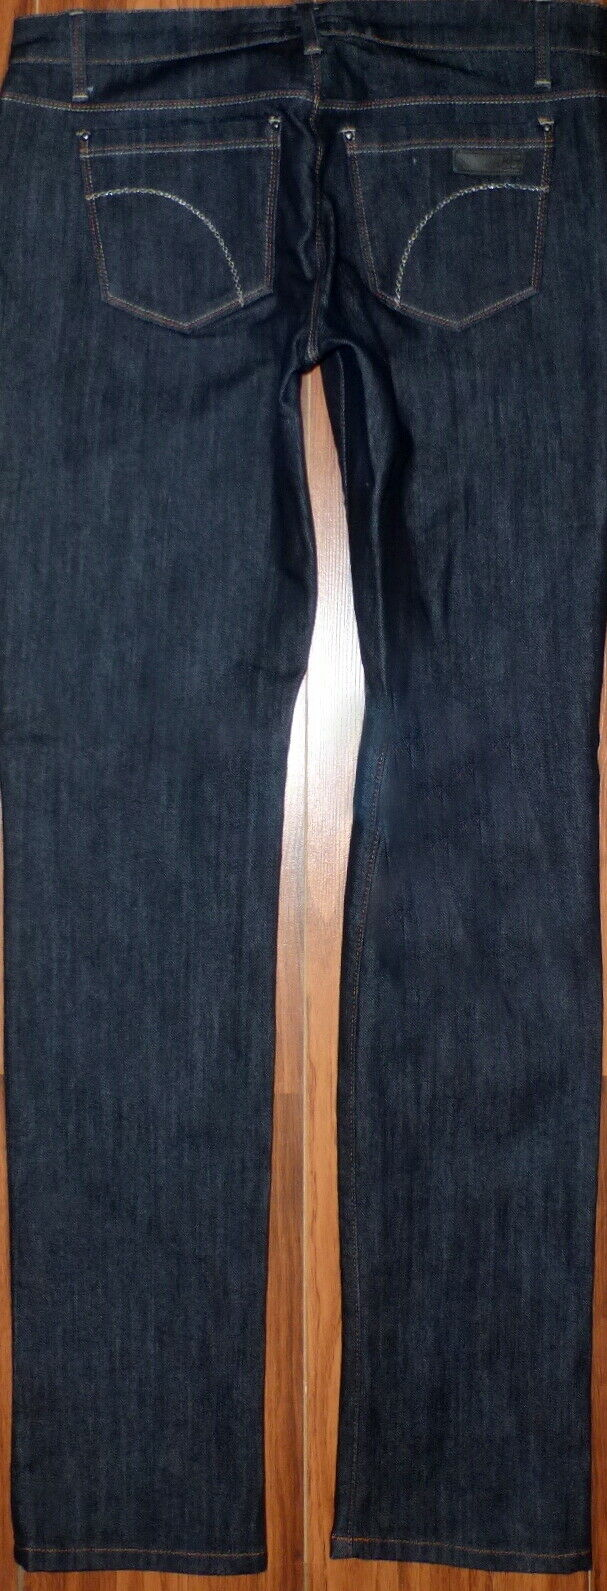 NEW WOMENS JOES CIGARETTE STYLE SKINNY FIT LUCA DARK WASH JEANS SIZE 28X34